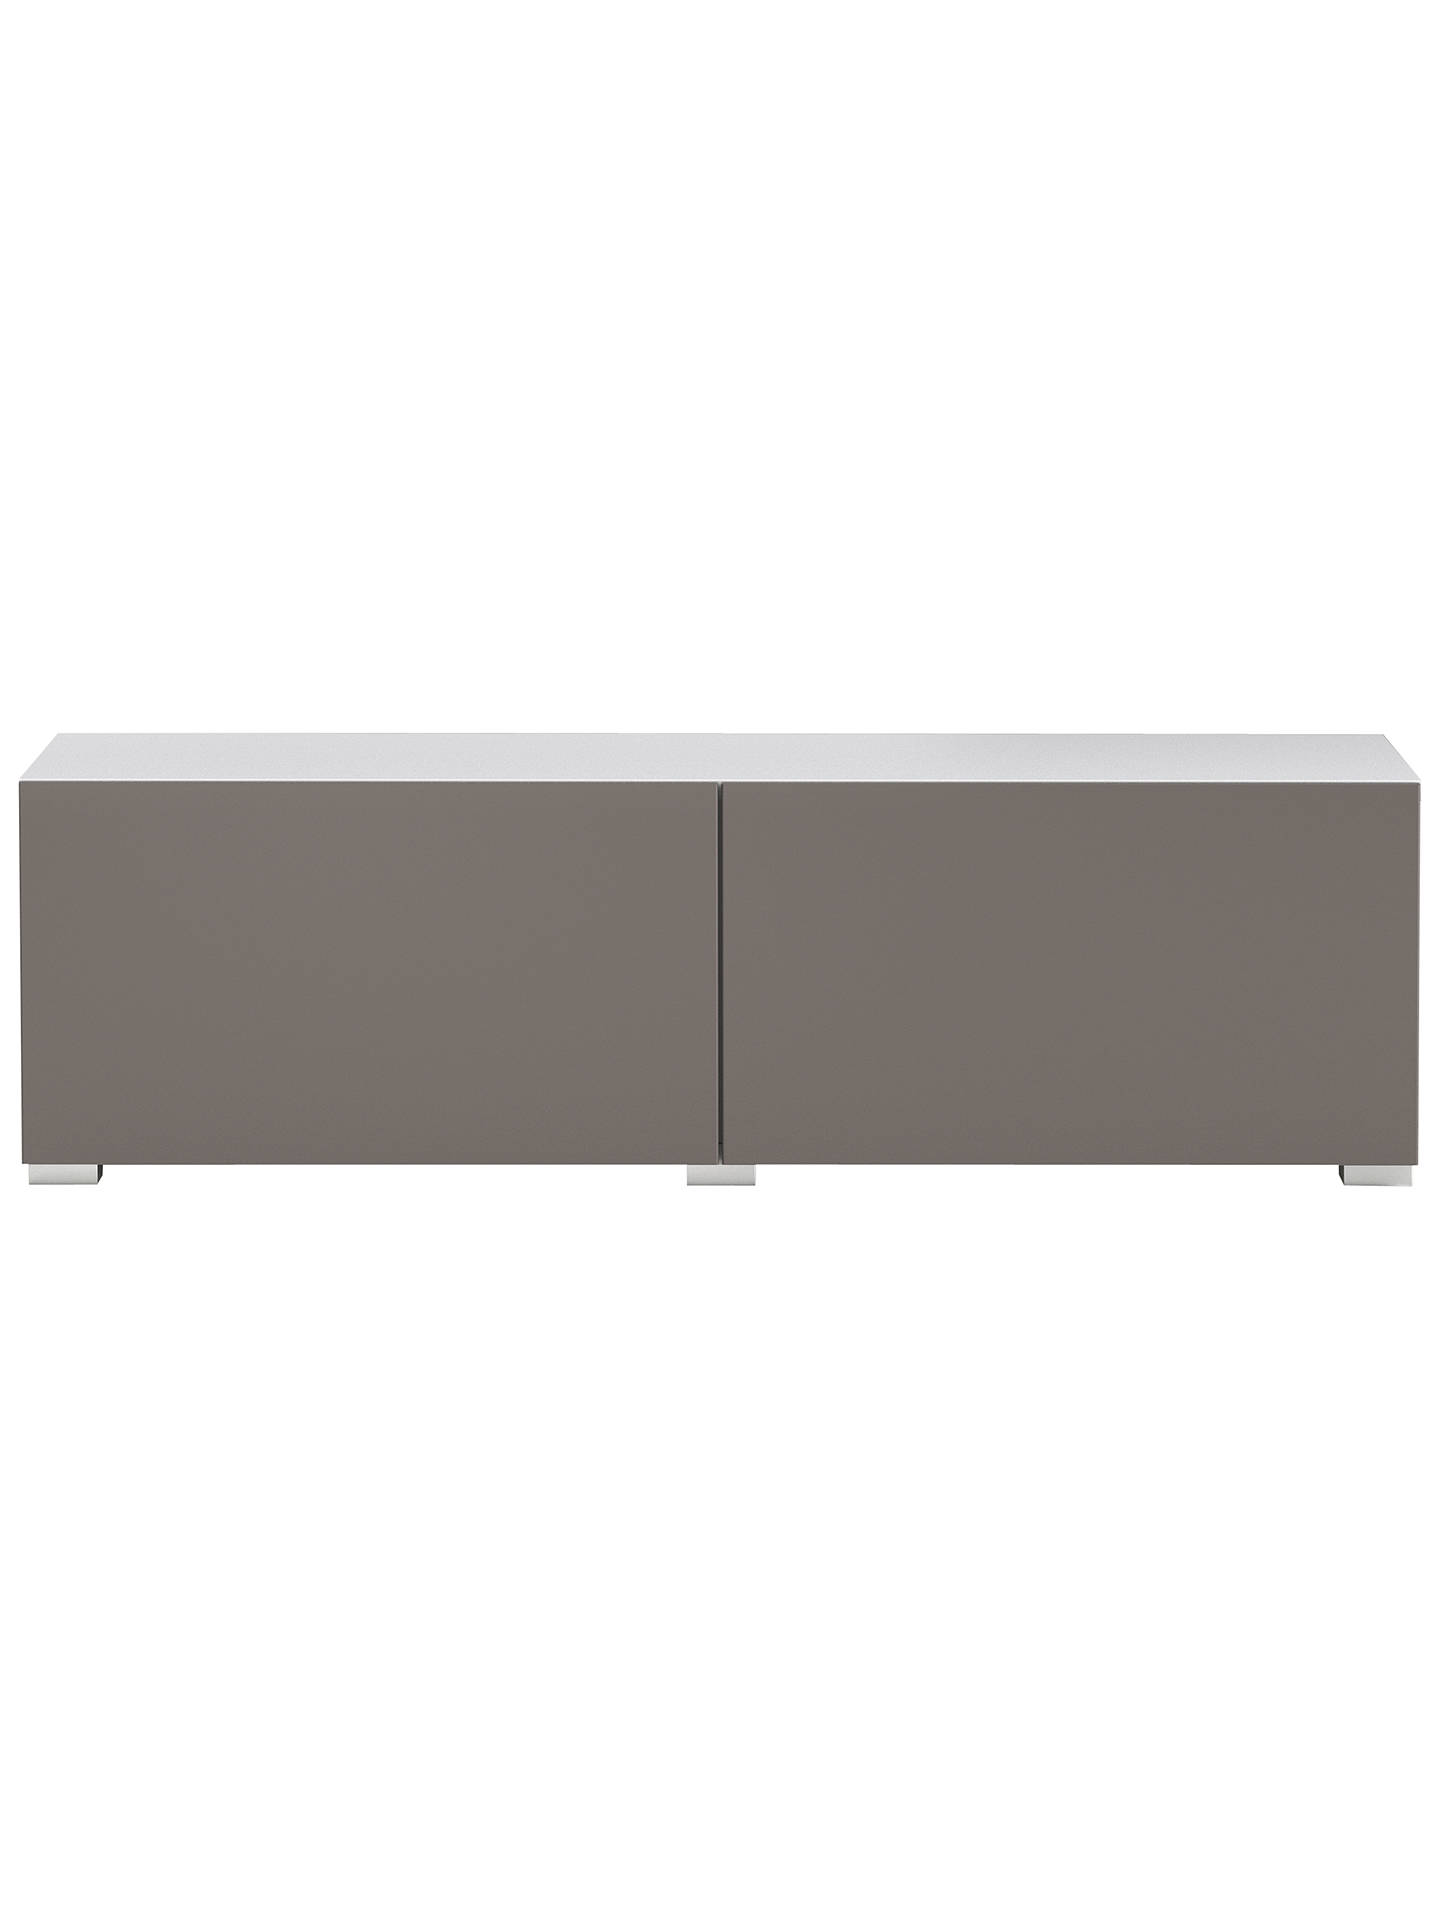 BuyHouse by John Lewis Match Low wide Shelf Unit White & Matt Mocha Doors Online at johnlewis.com